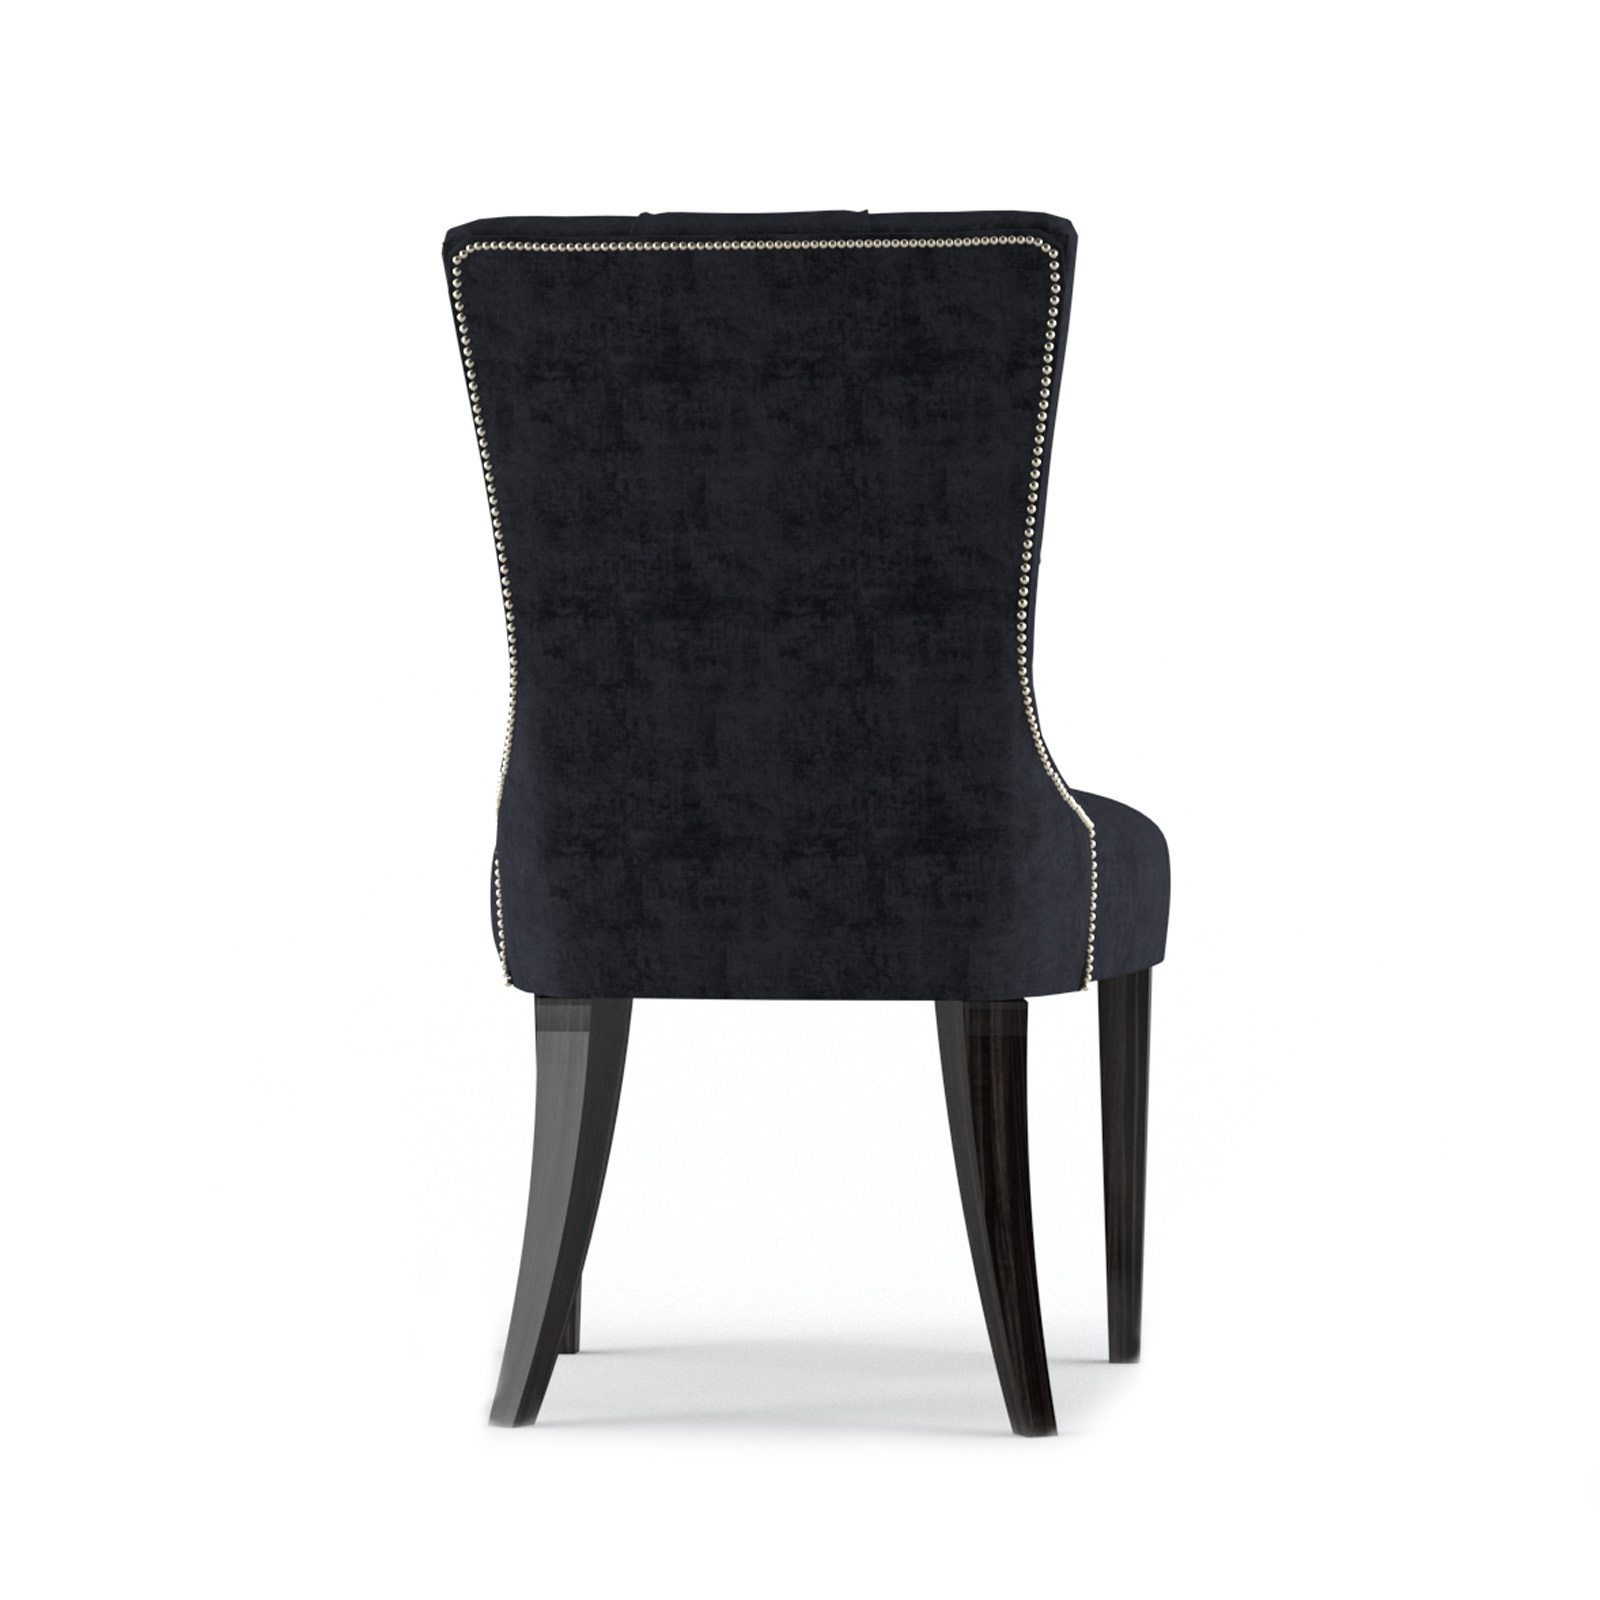 Ramsay-Dining-Chair-by-Bonham-&-Bonham-07